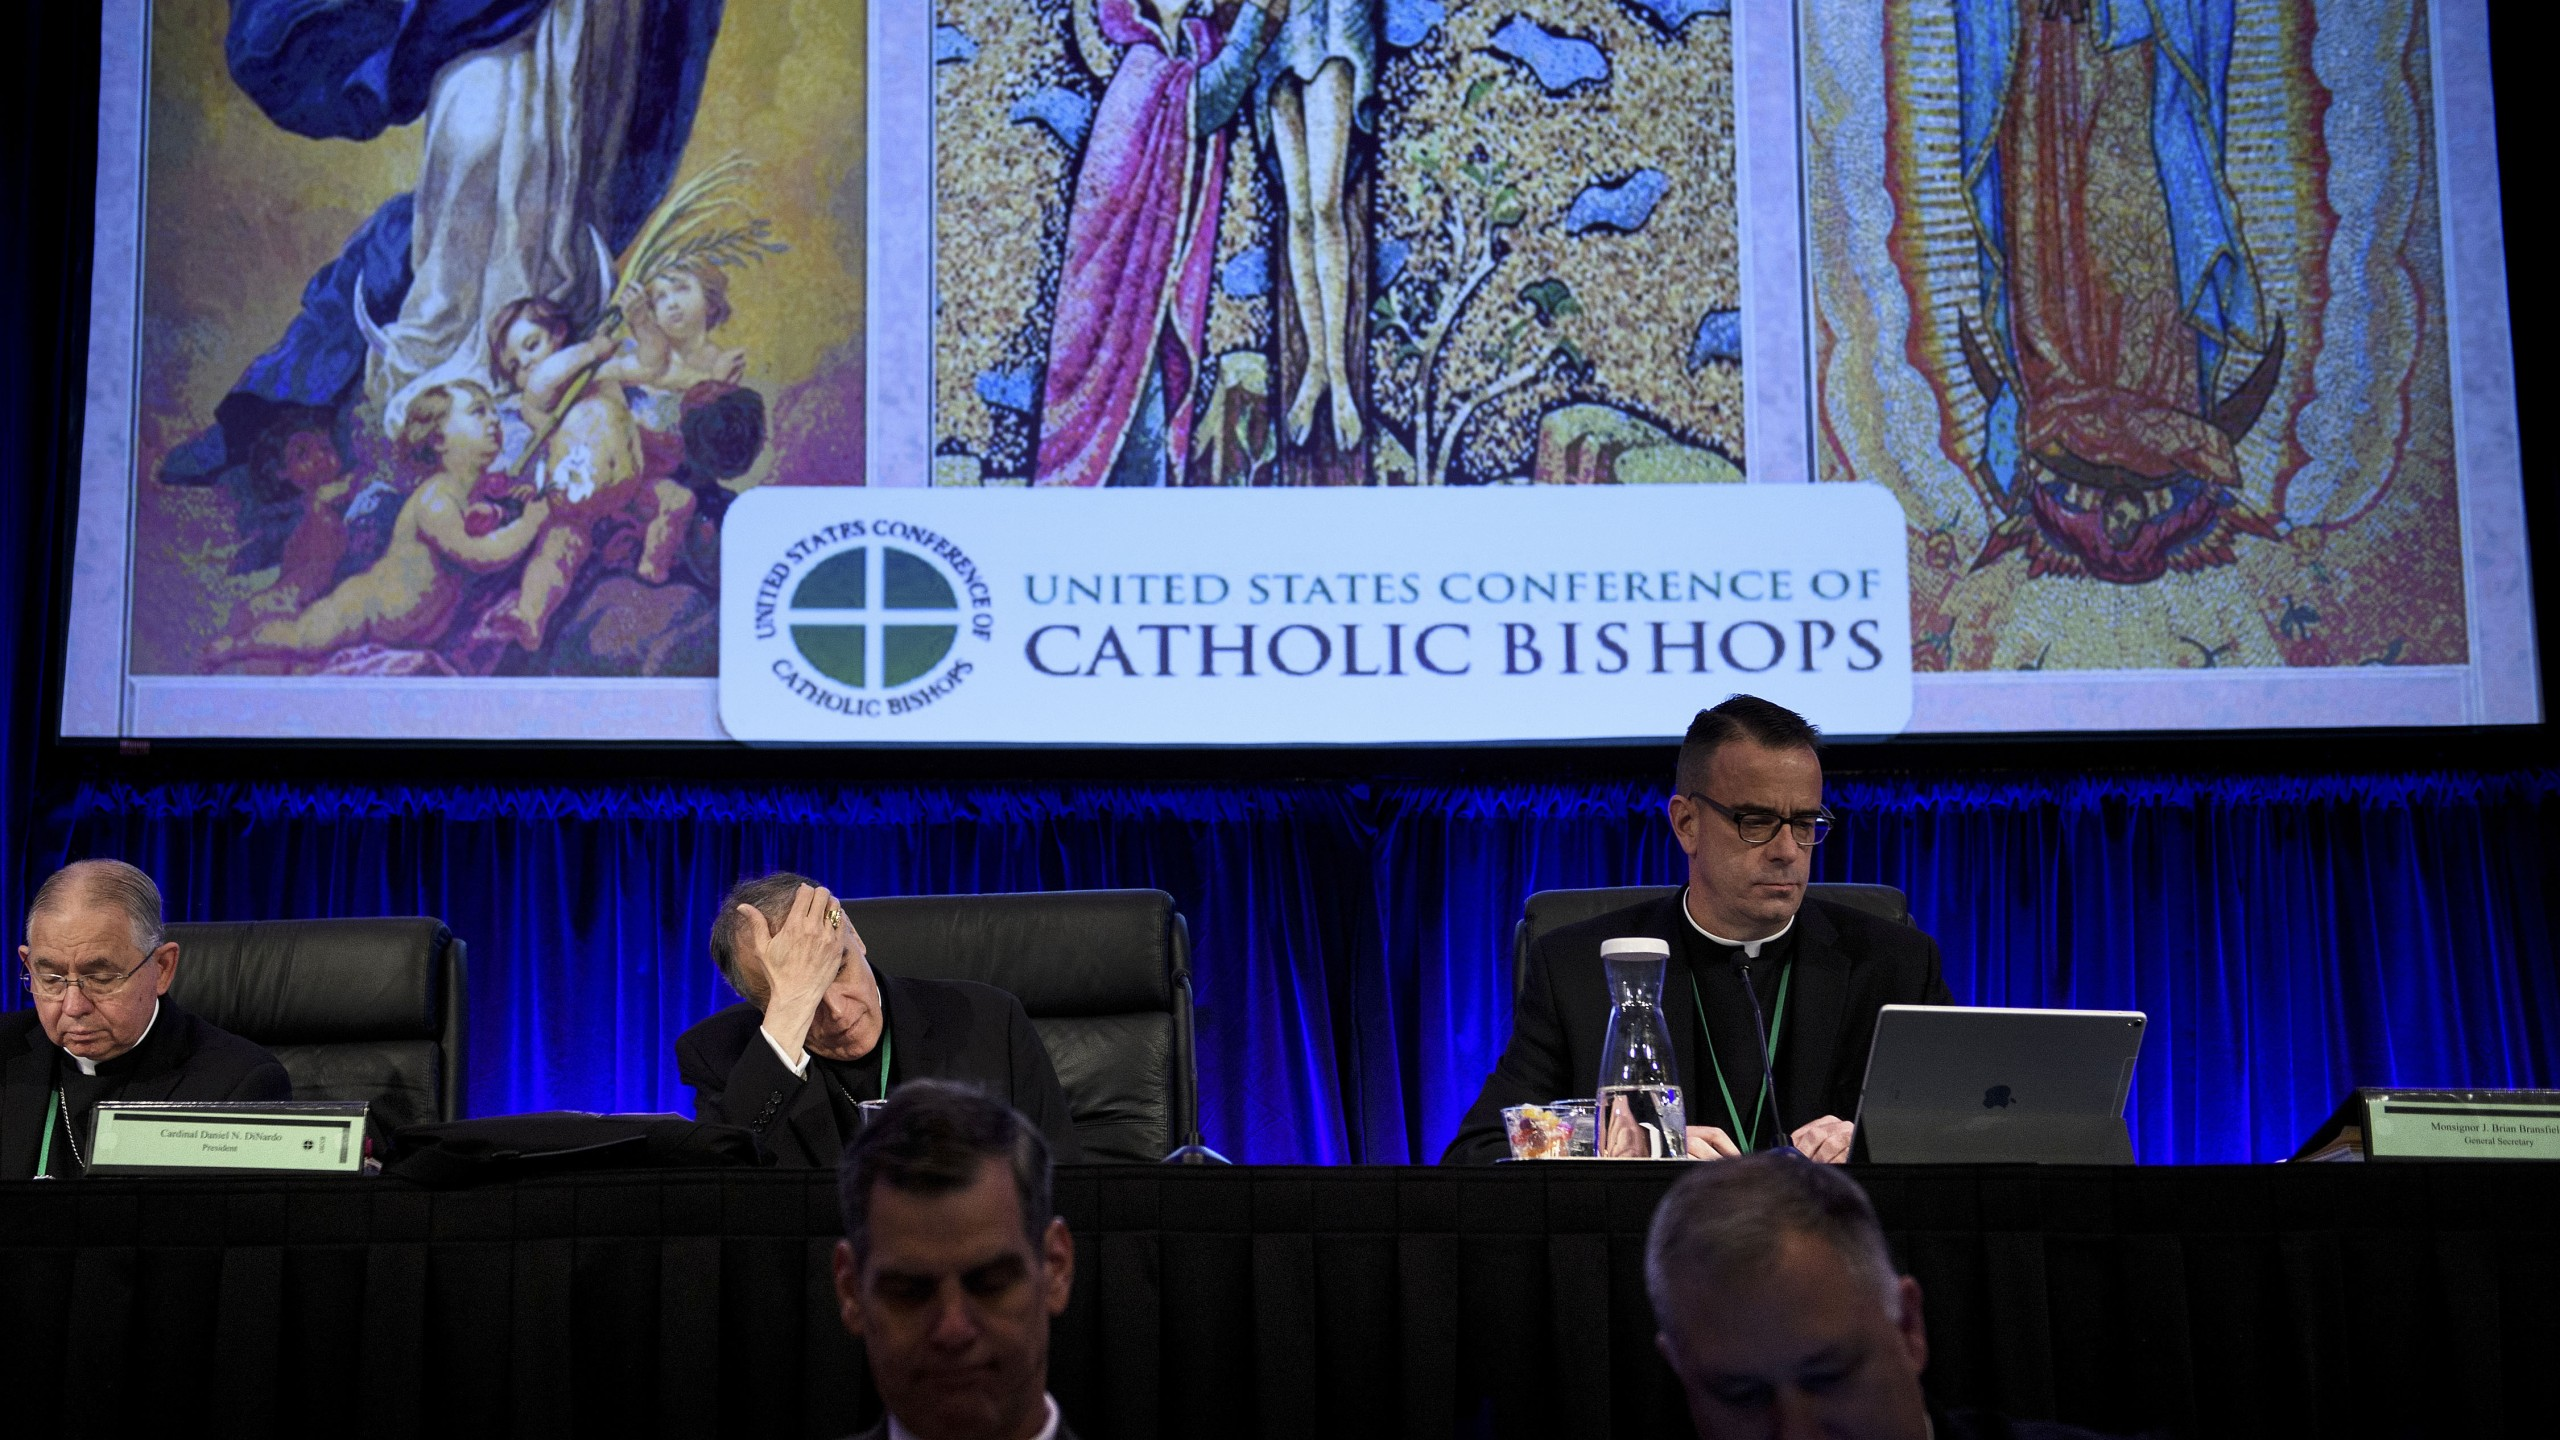 Reverend Jose Gomez (Top L), Archbishop of Los Angeles and Vice President of the USCCB General Assembly, Cardinal Daniel DiNardo (Top C), President of the USCCB General Assembly, and others wait for an opening session during the annual US Conference of Catholic Bishops November 12, 2018 in Baltimore, Maryland. (Credit: BRENDAN SMIALOWSKI/AFP/Getty Images)